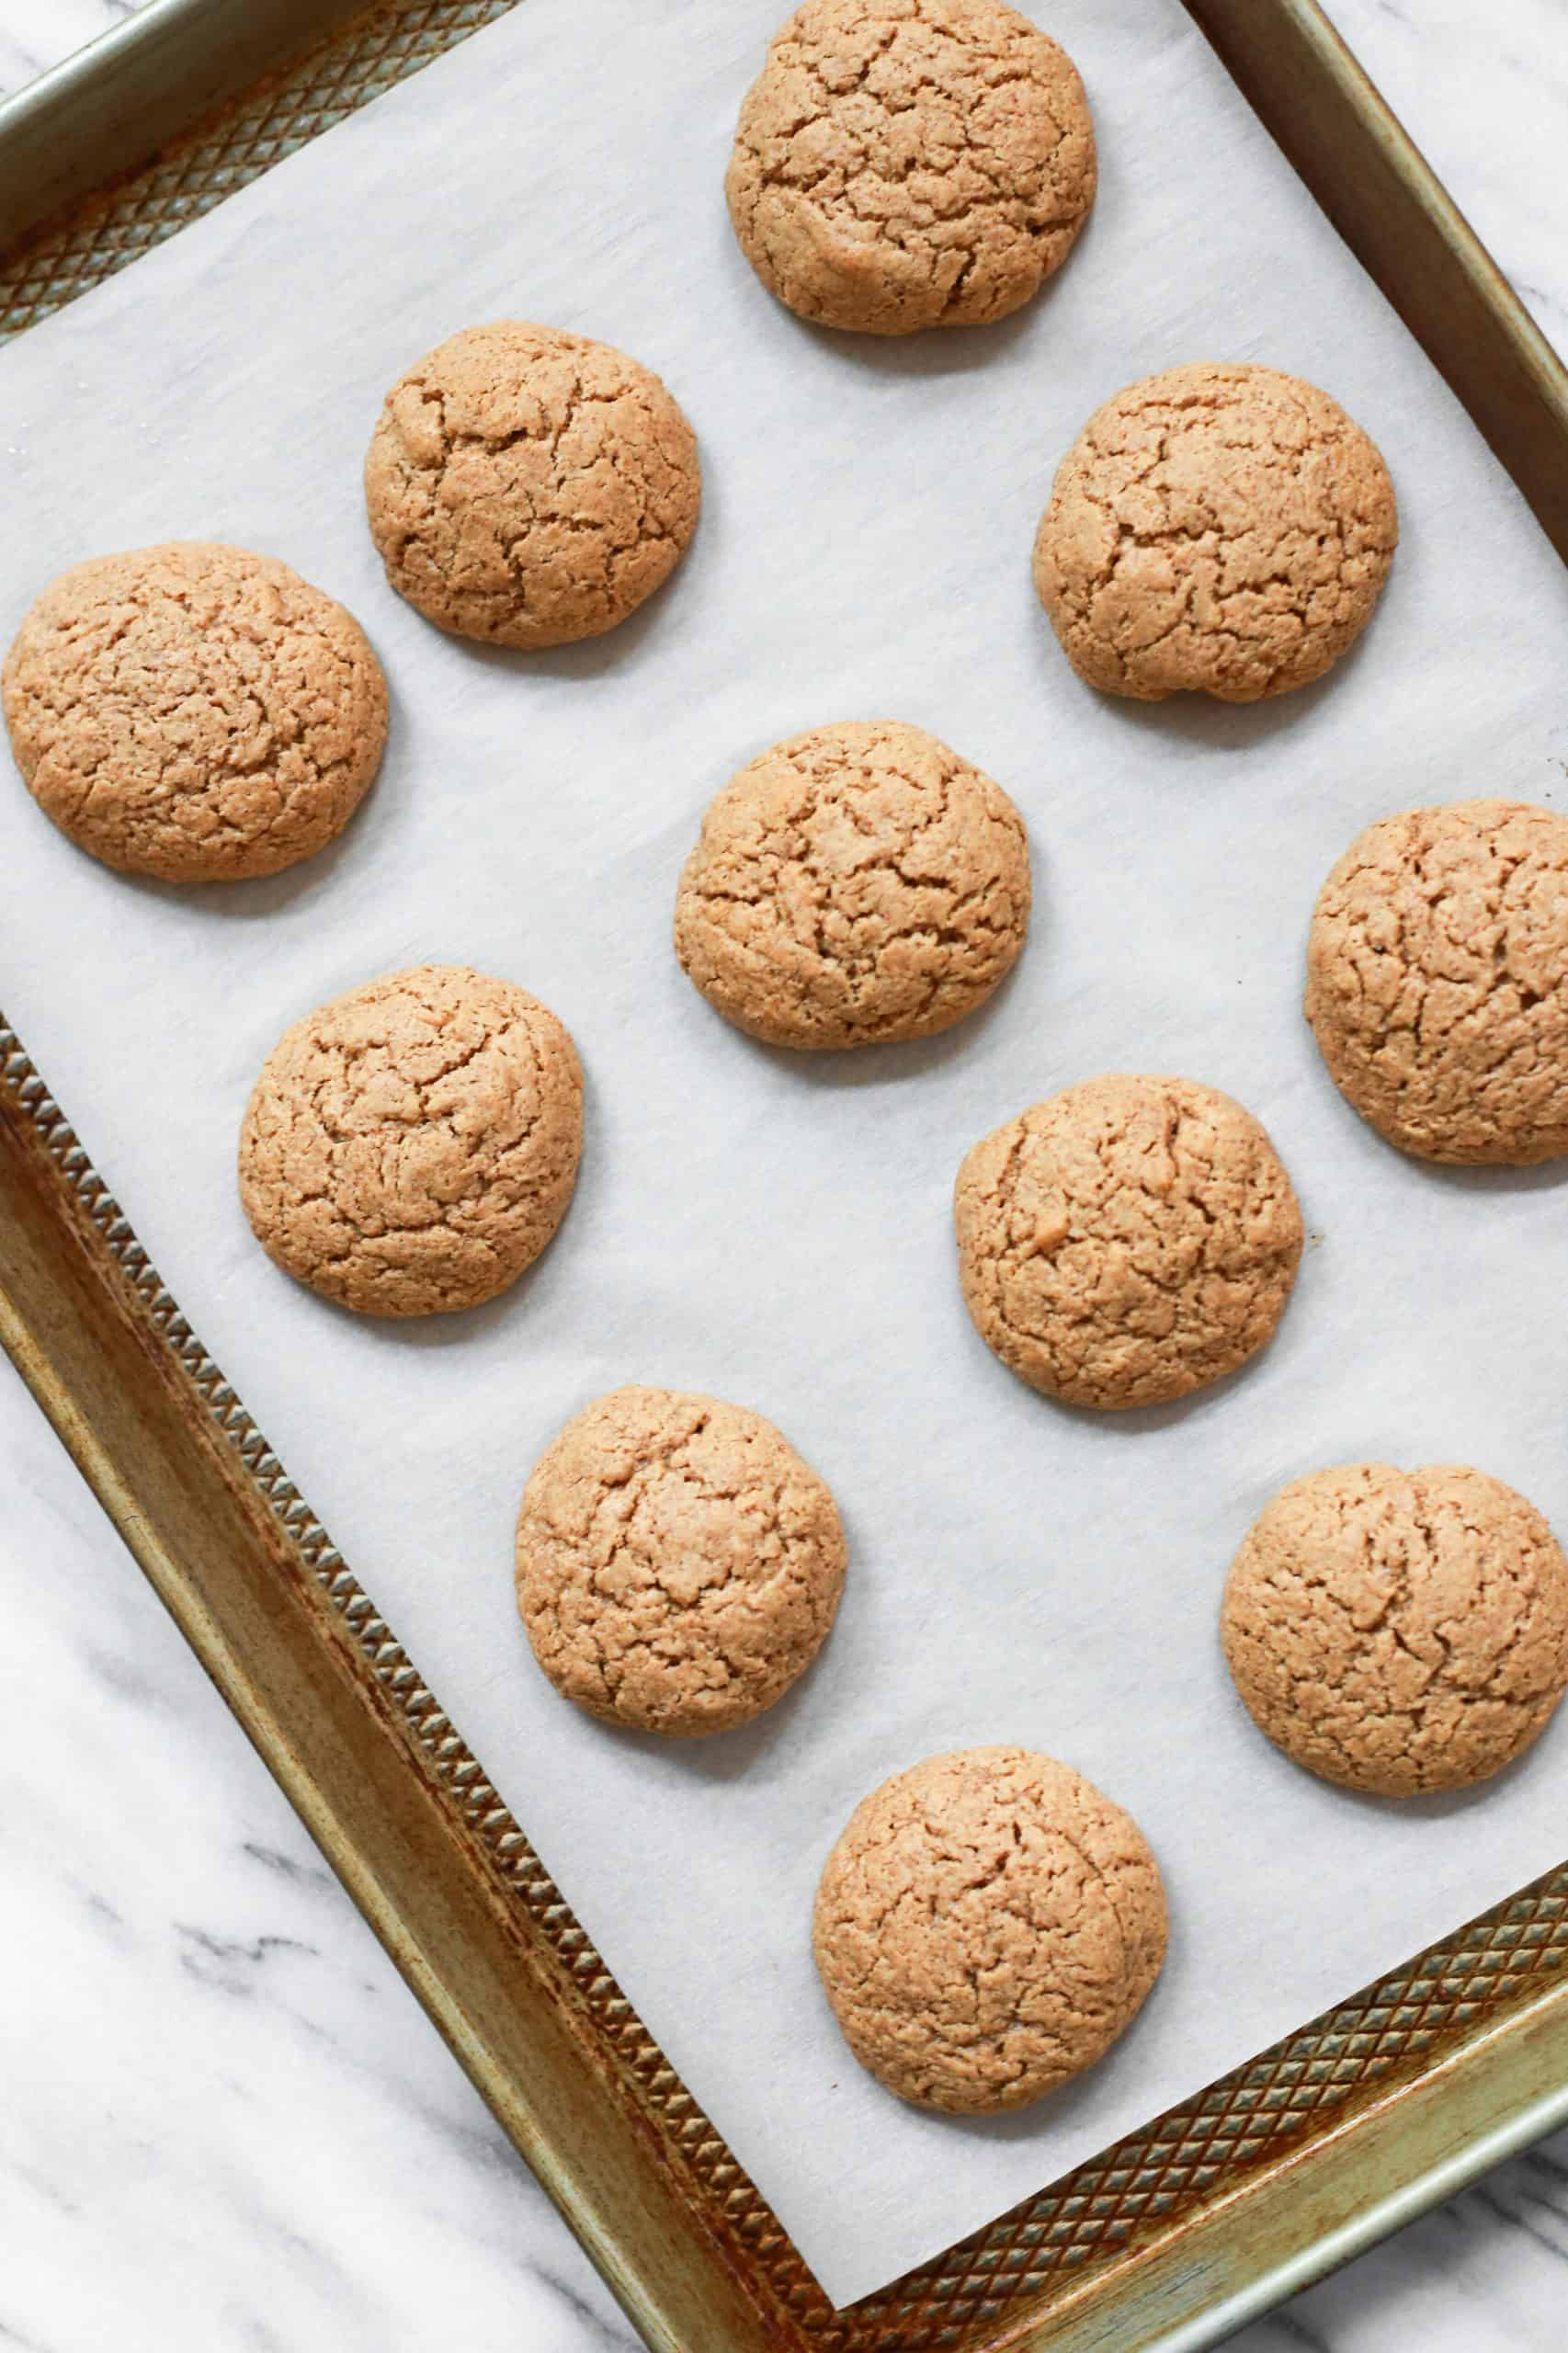 Almond butter cookies on a parchment-lined baking sheet.